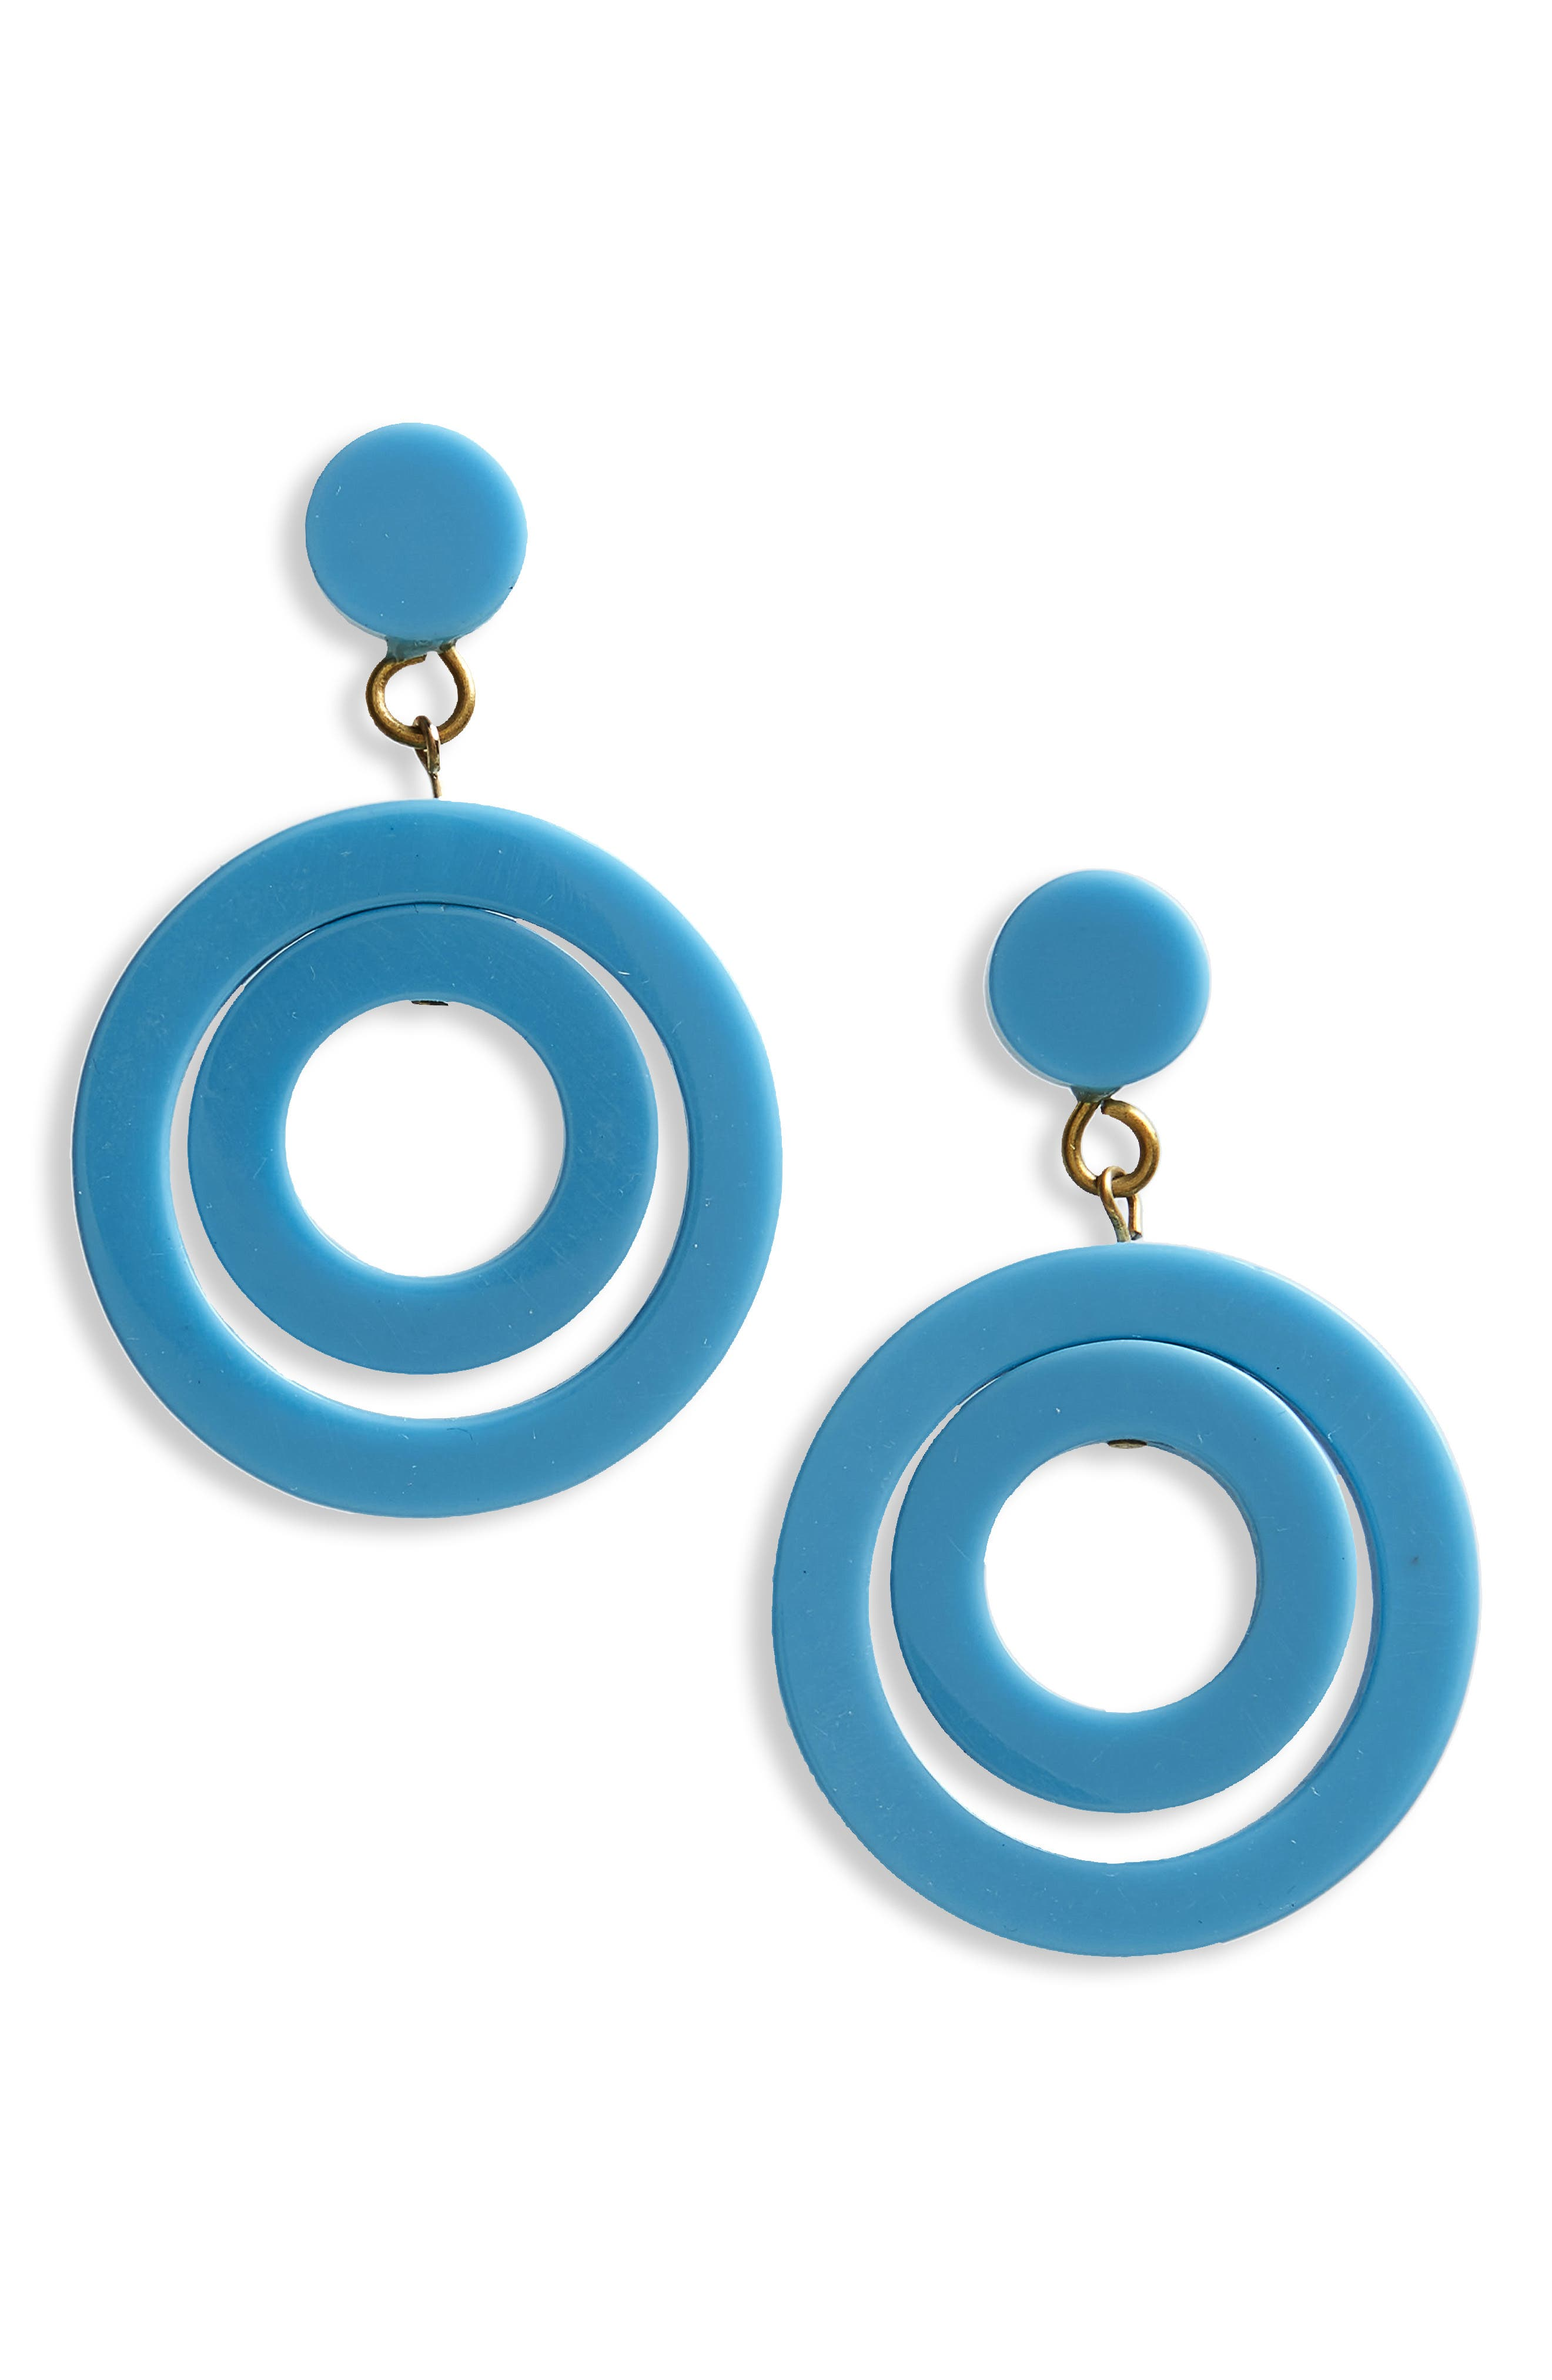 Huntington Earrings,                             Main thumbnail 1, color,                             400